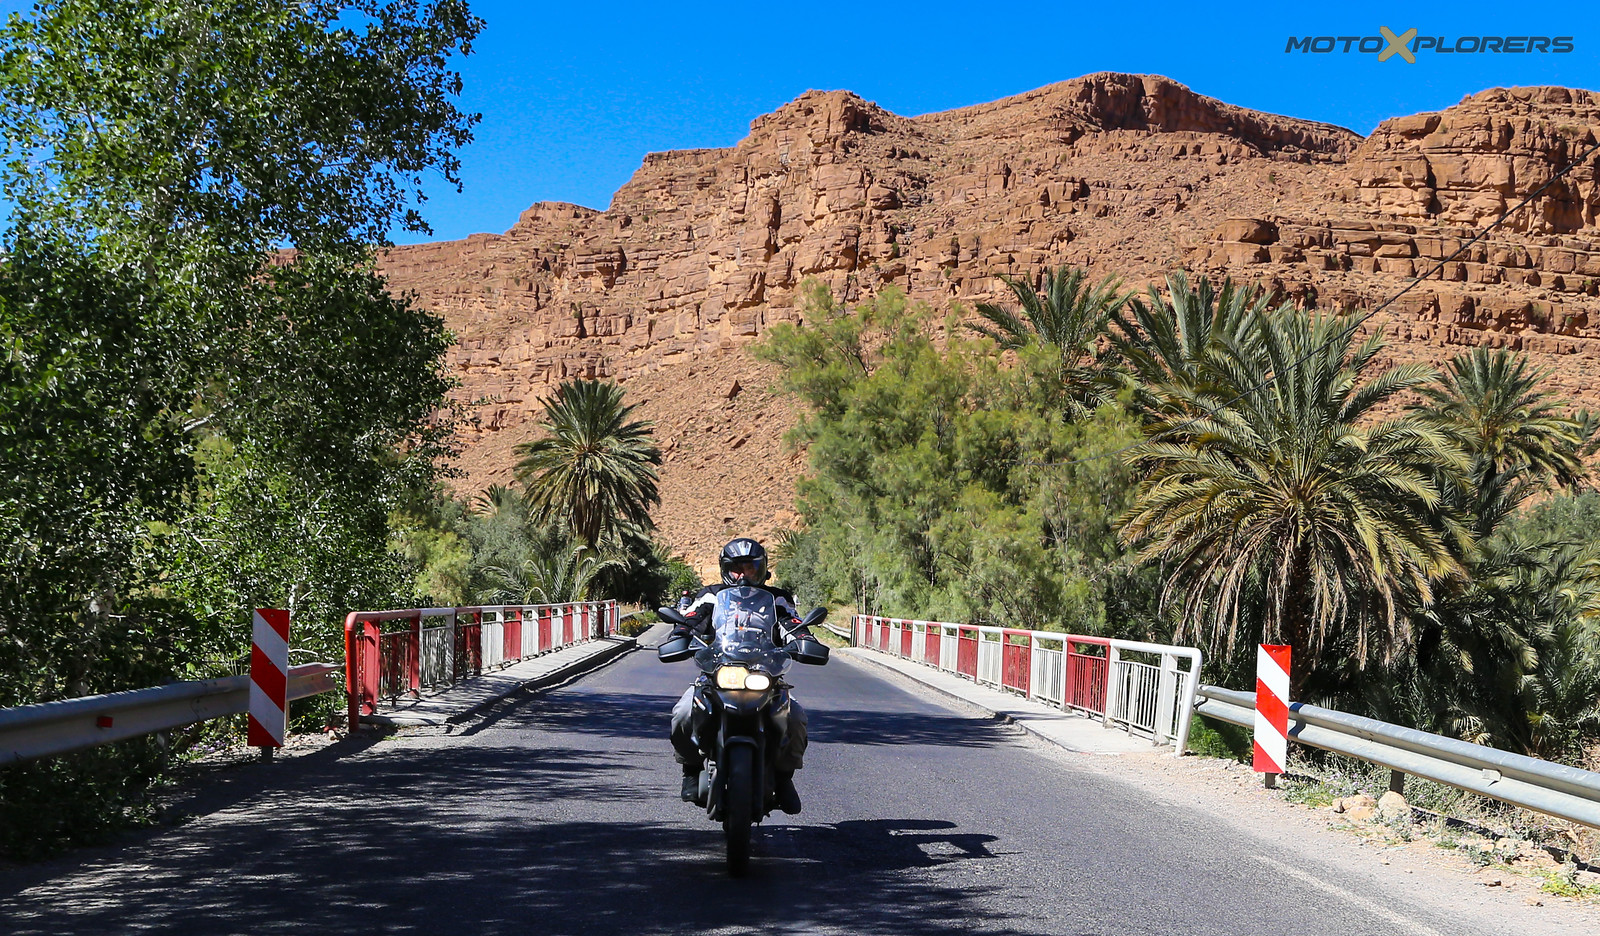 Motoxplorers_Morocco_Tour_2018_5 (99 of